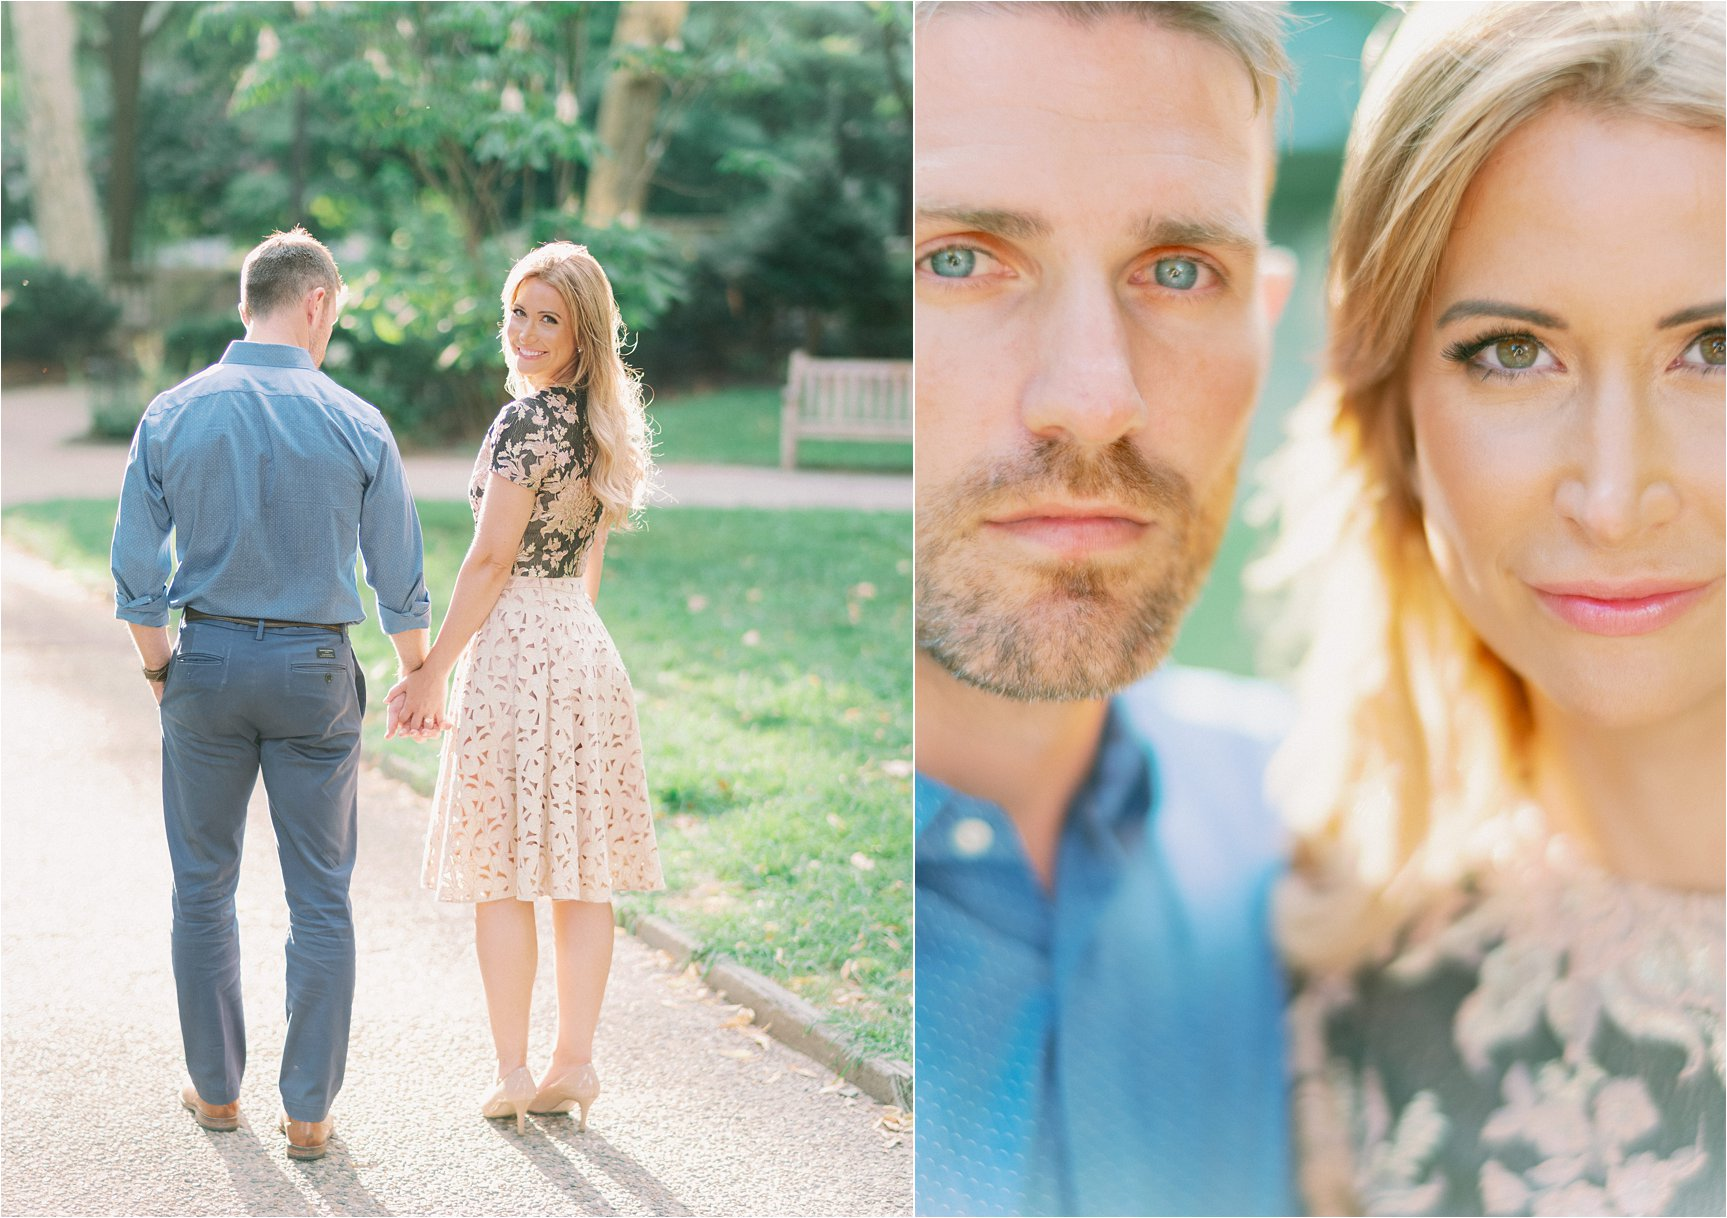 Philly_Engagement_Shoot182.JPG